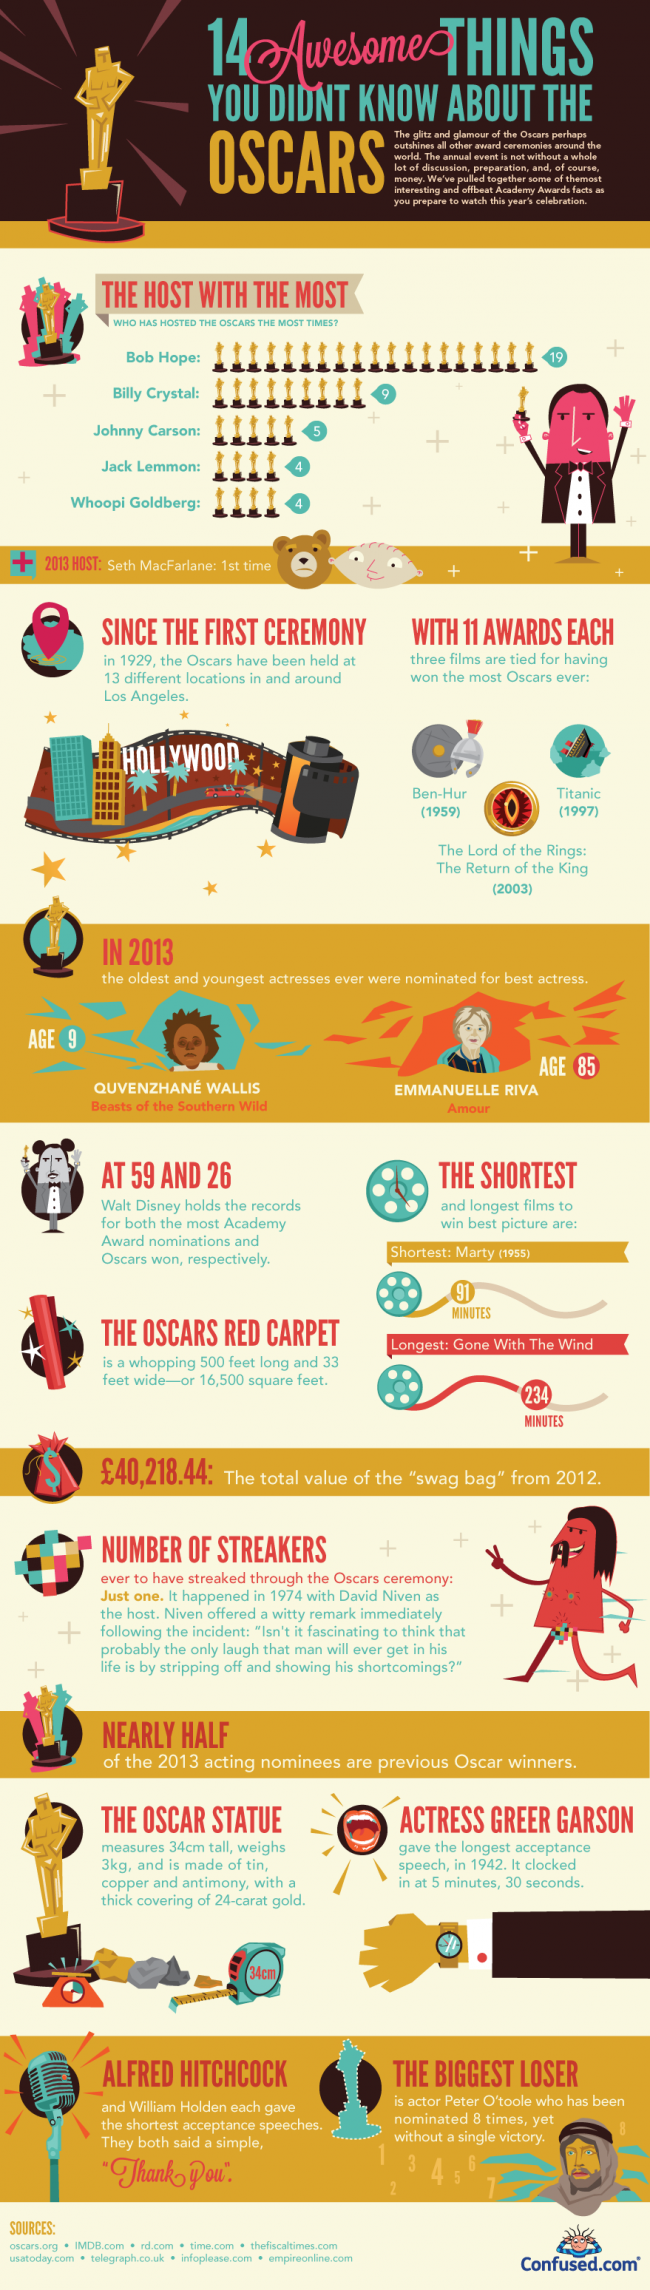 Confused the oscars 650x2290 14 Awesome Things You Didnt Know About the Oscars